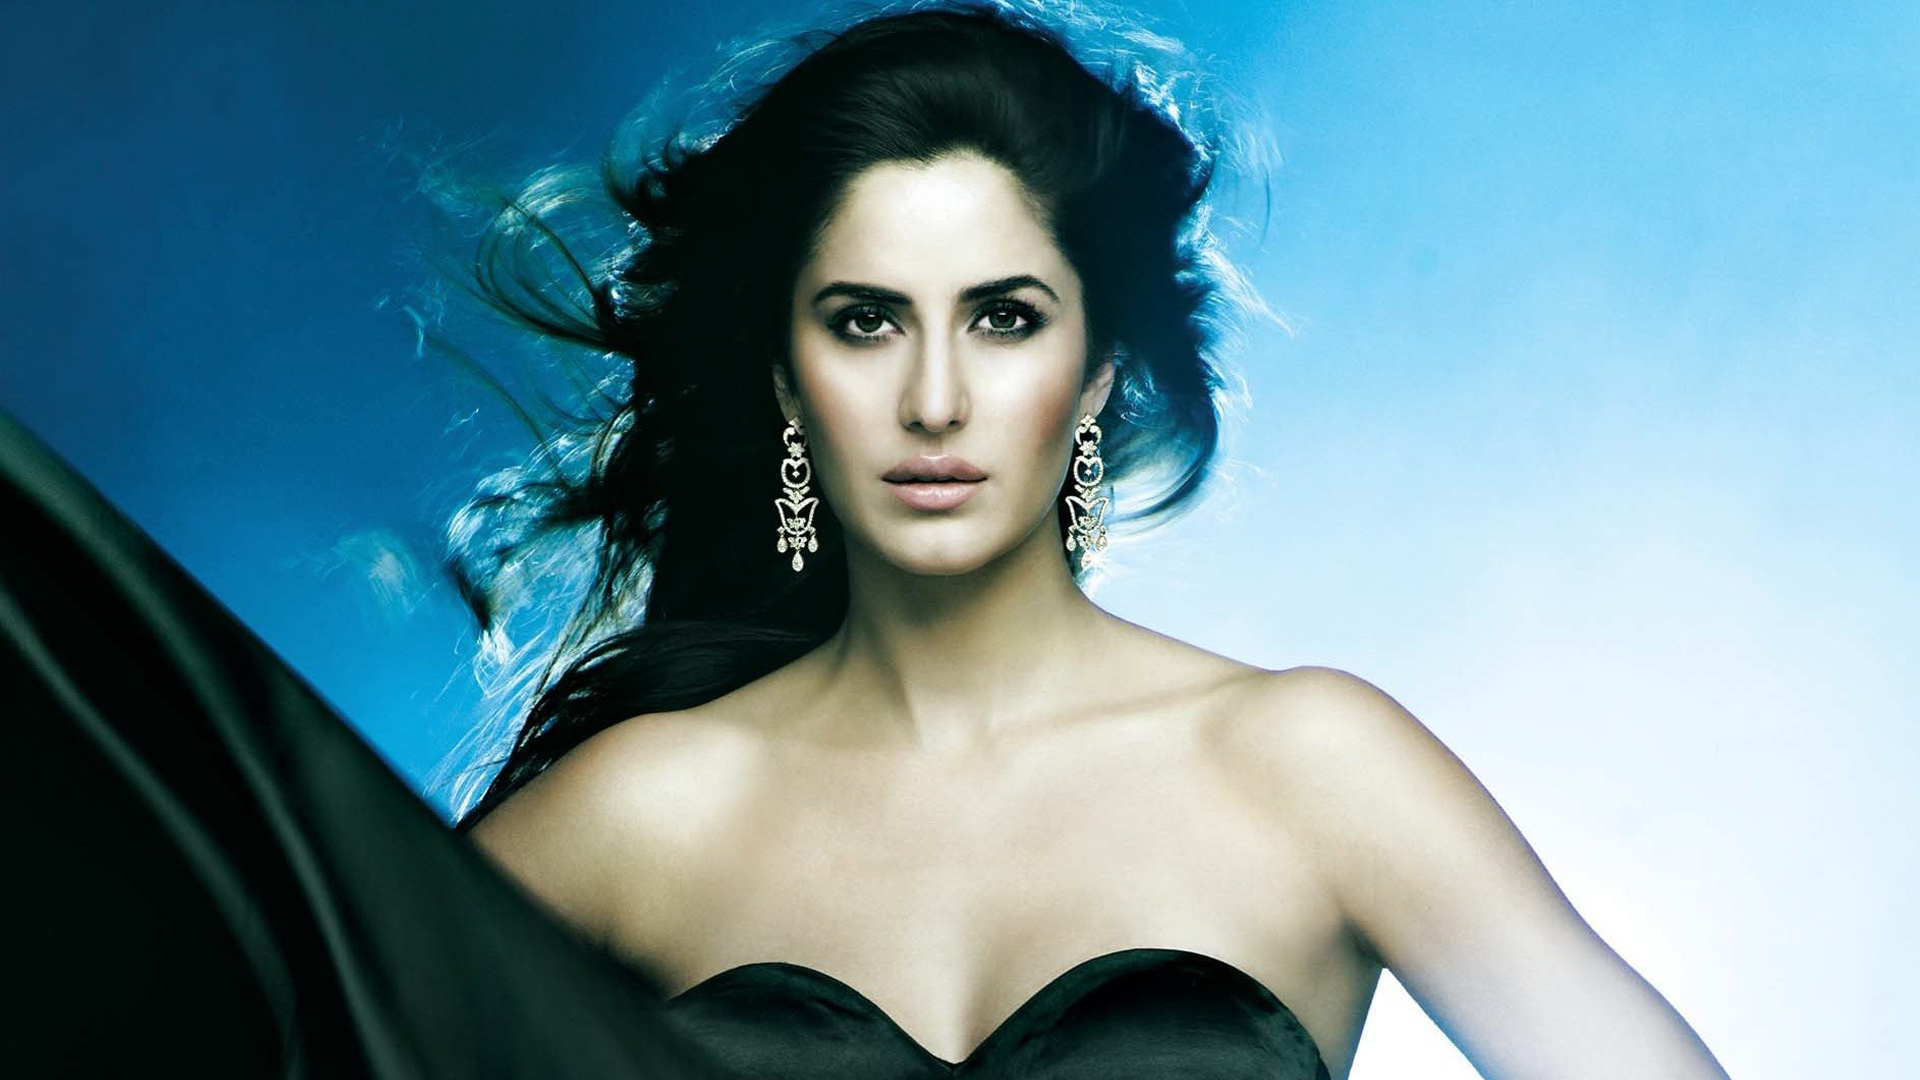 katrina-kaif-full-hd-wallpaper